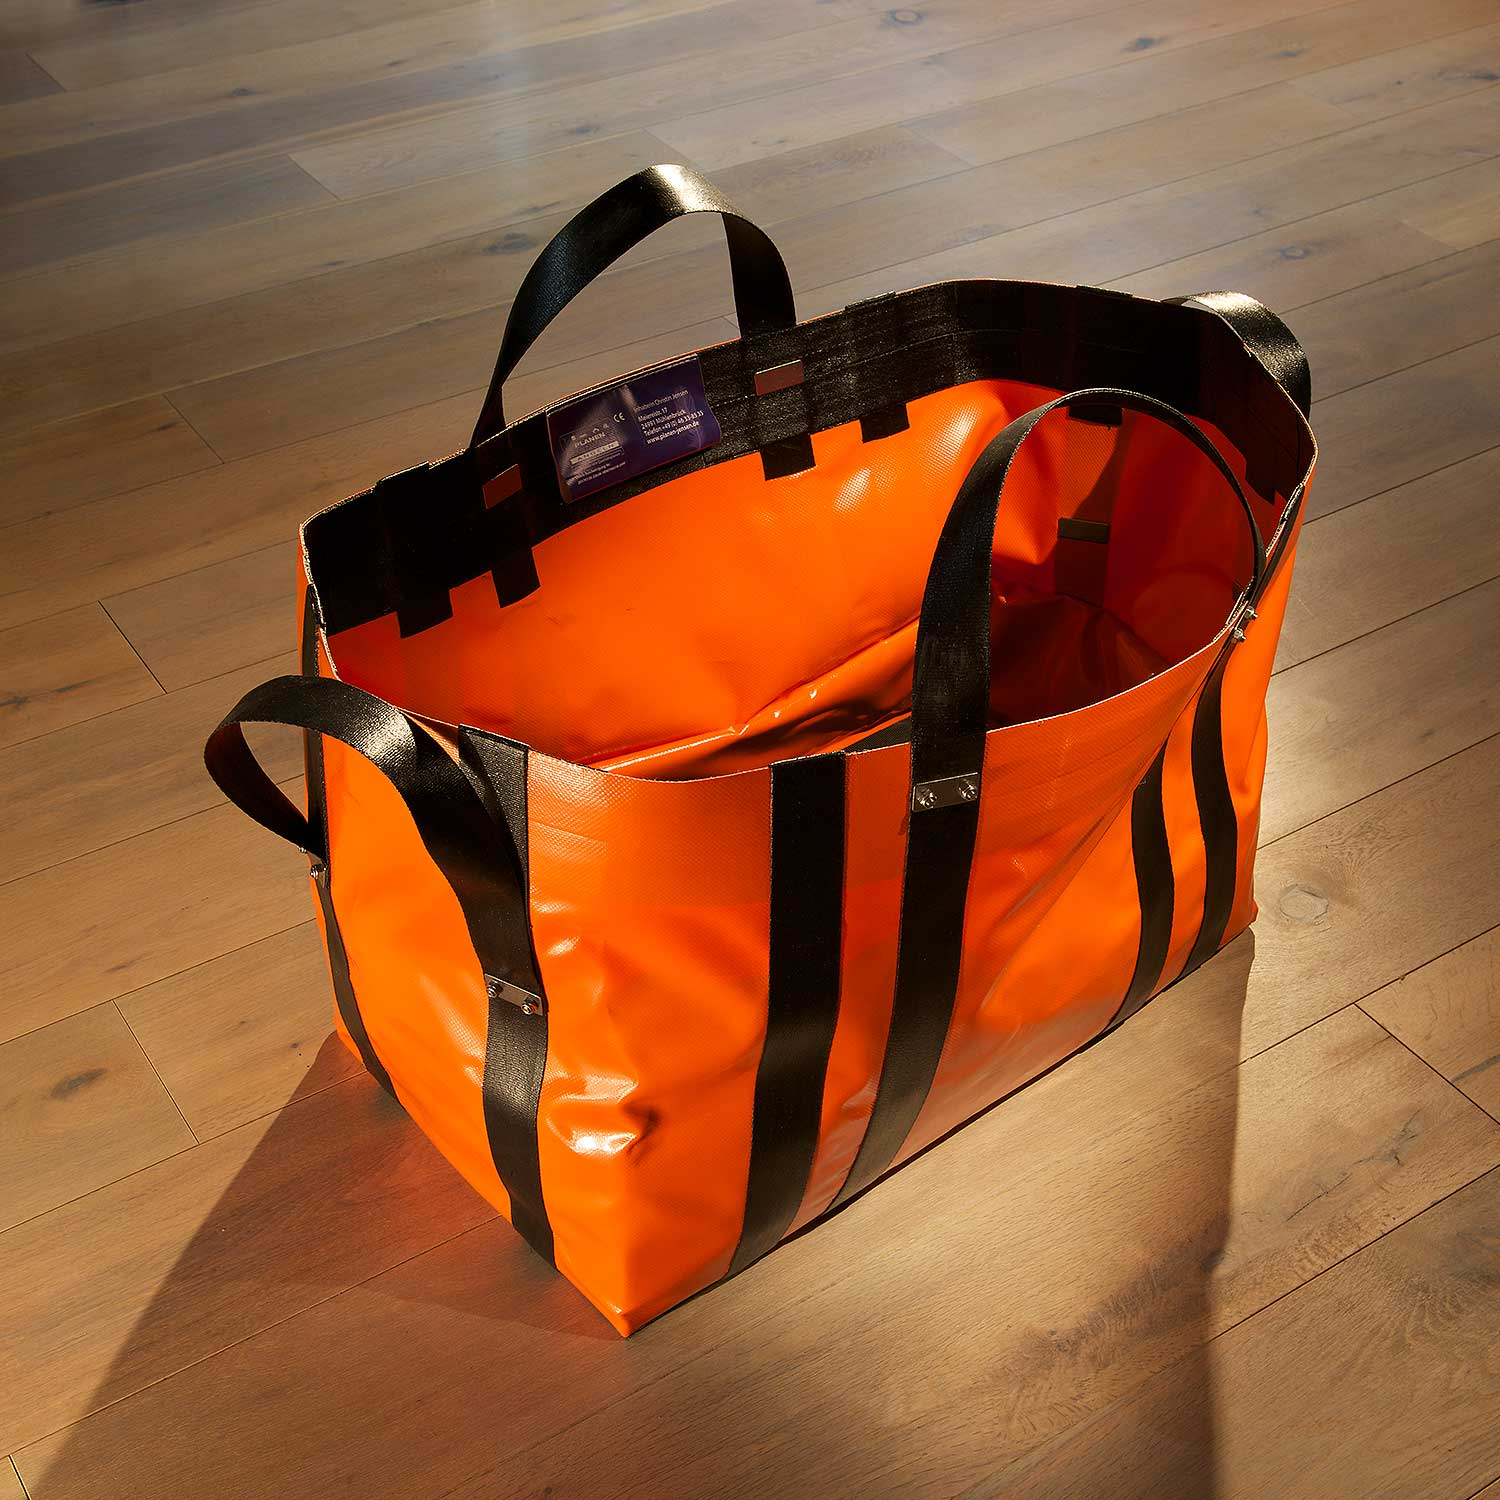 Angular heavy load bag made of technical textiles